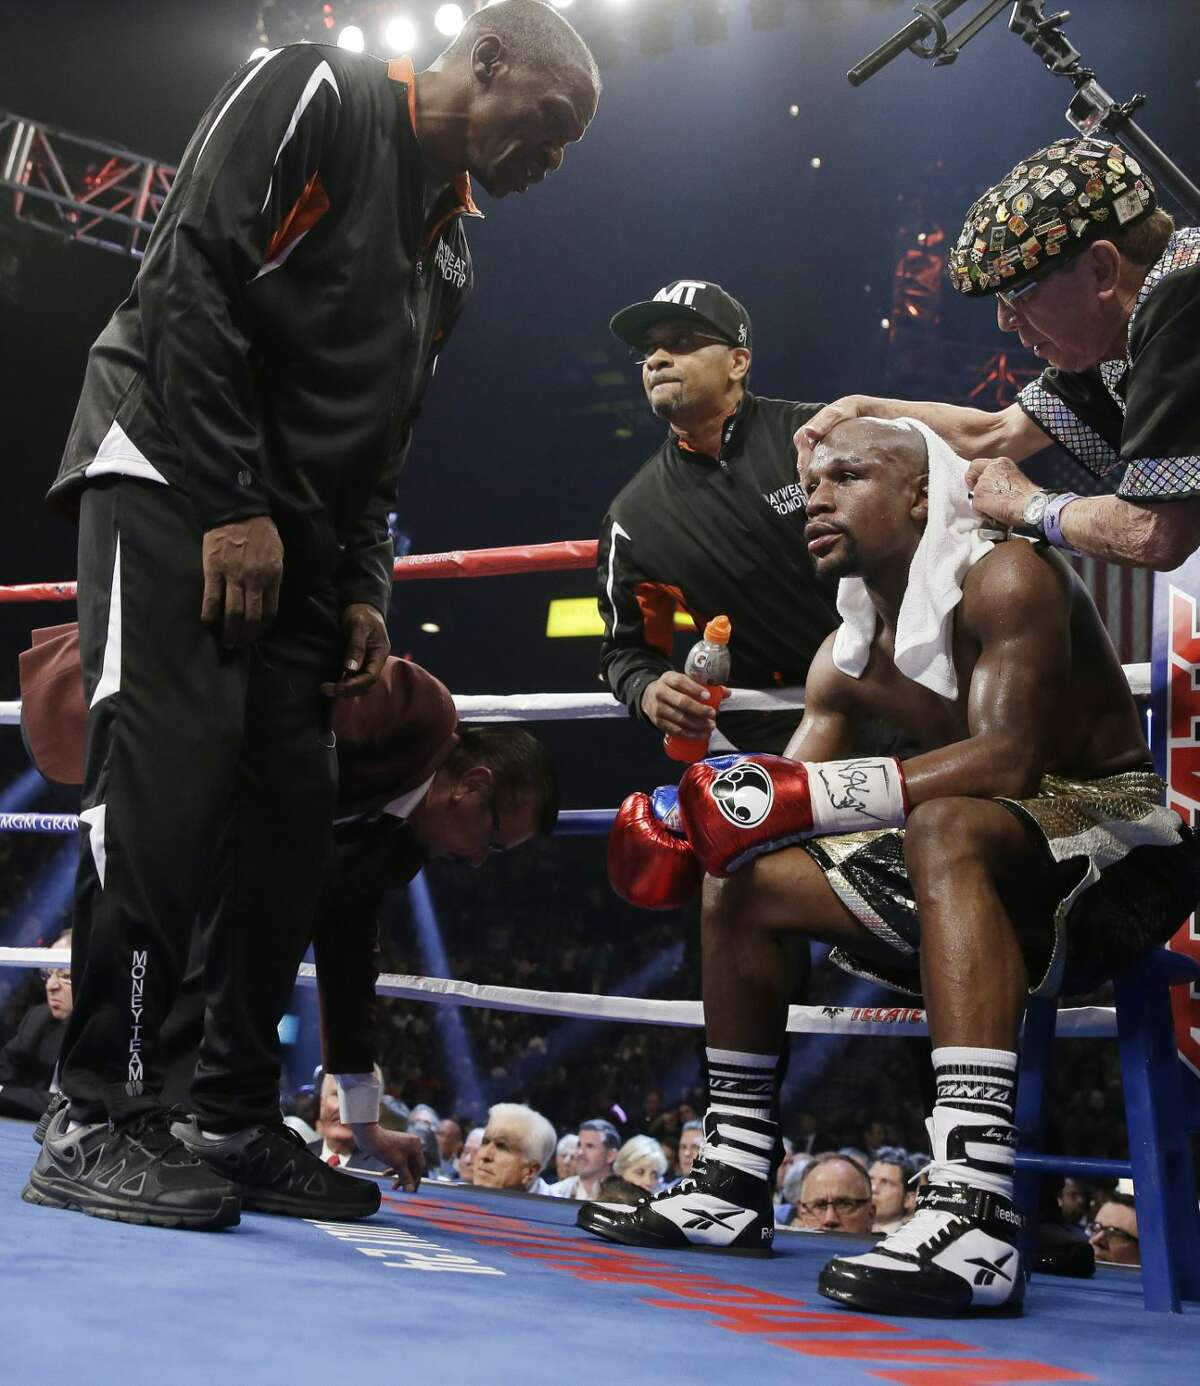 Floyd Mayweather Jr., right, sits in his corner with his father, head trainer Floyd Mayweather Sr., left, during his welterweight title fight against Manny Pacquiao on Saturday, May 2, 2015 in Las Vegas. (AP Photo/Isaac Brekken)